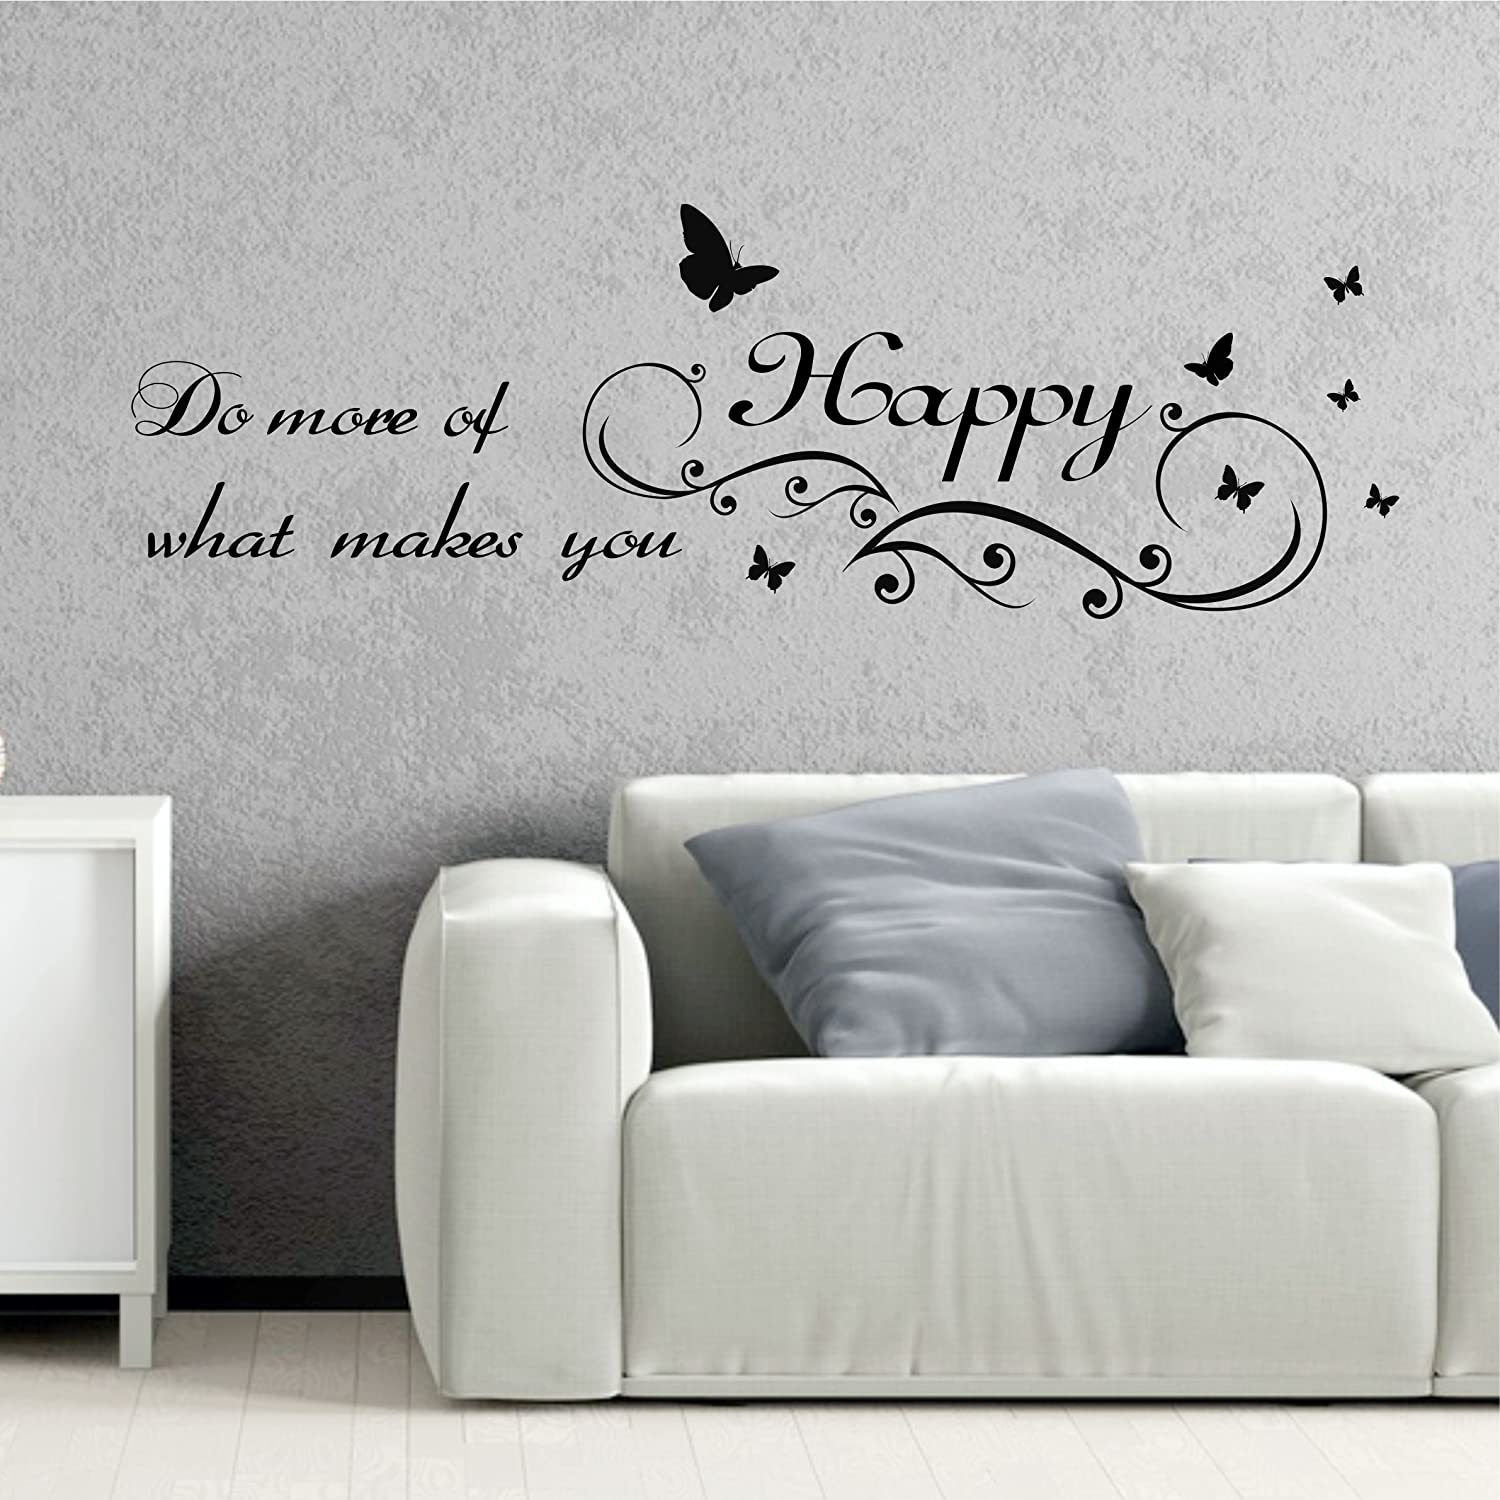 greenluup® XL Wandtattoo Spruch Motto Do more of what makes you ...